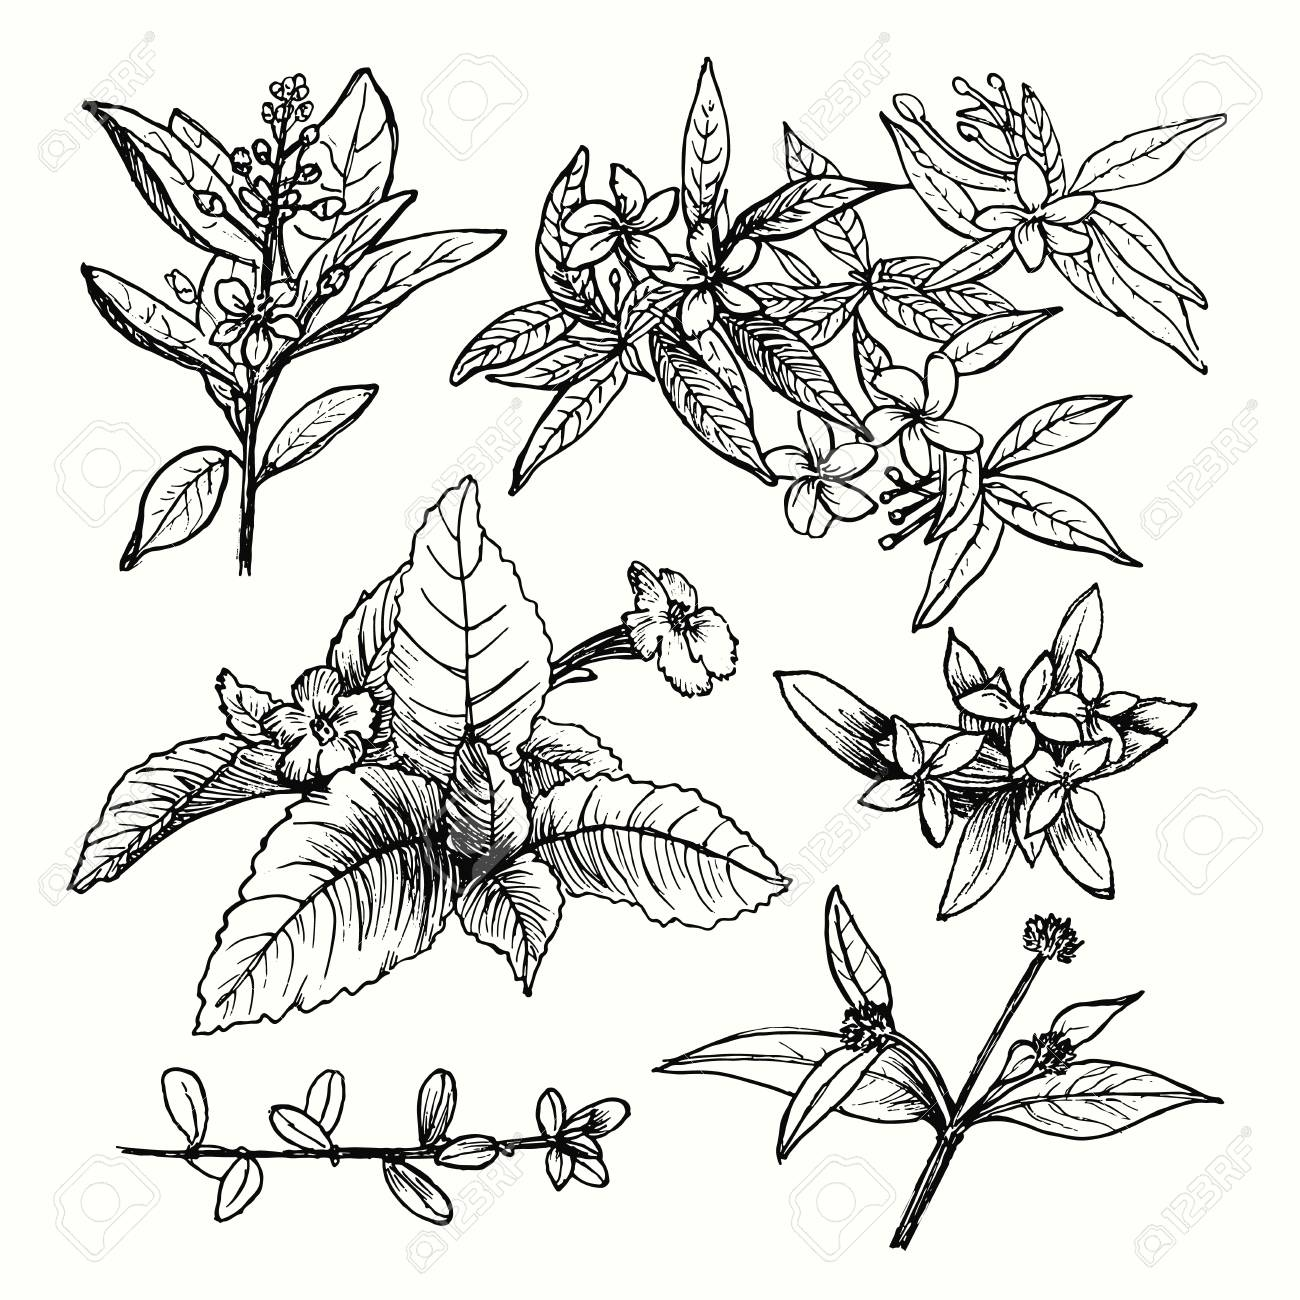 Vector set of hand drawn garden plants, herbs, flowers, leaves, twigs, branches. Vintage floral sketch collection with jasmine. Detailed botanical elements for decoration. - 109902872